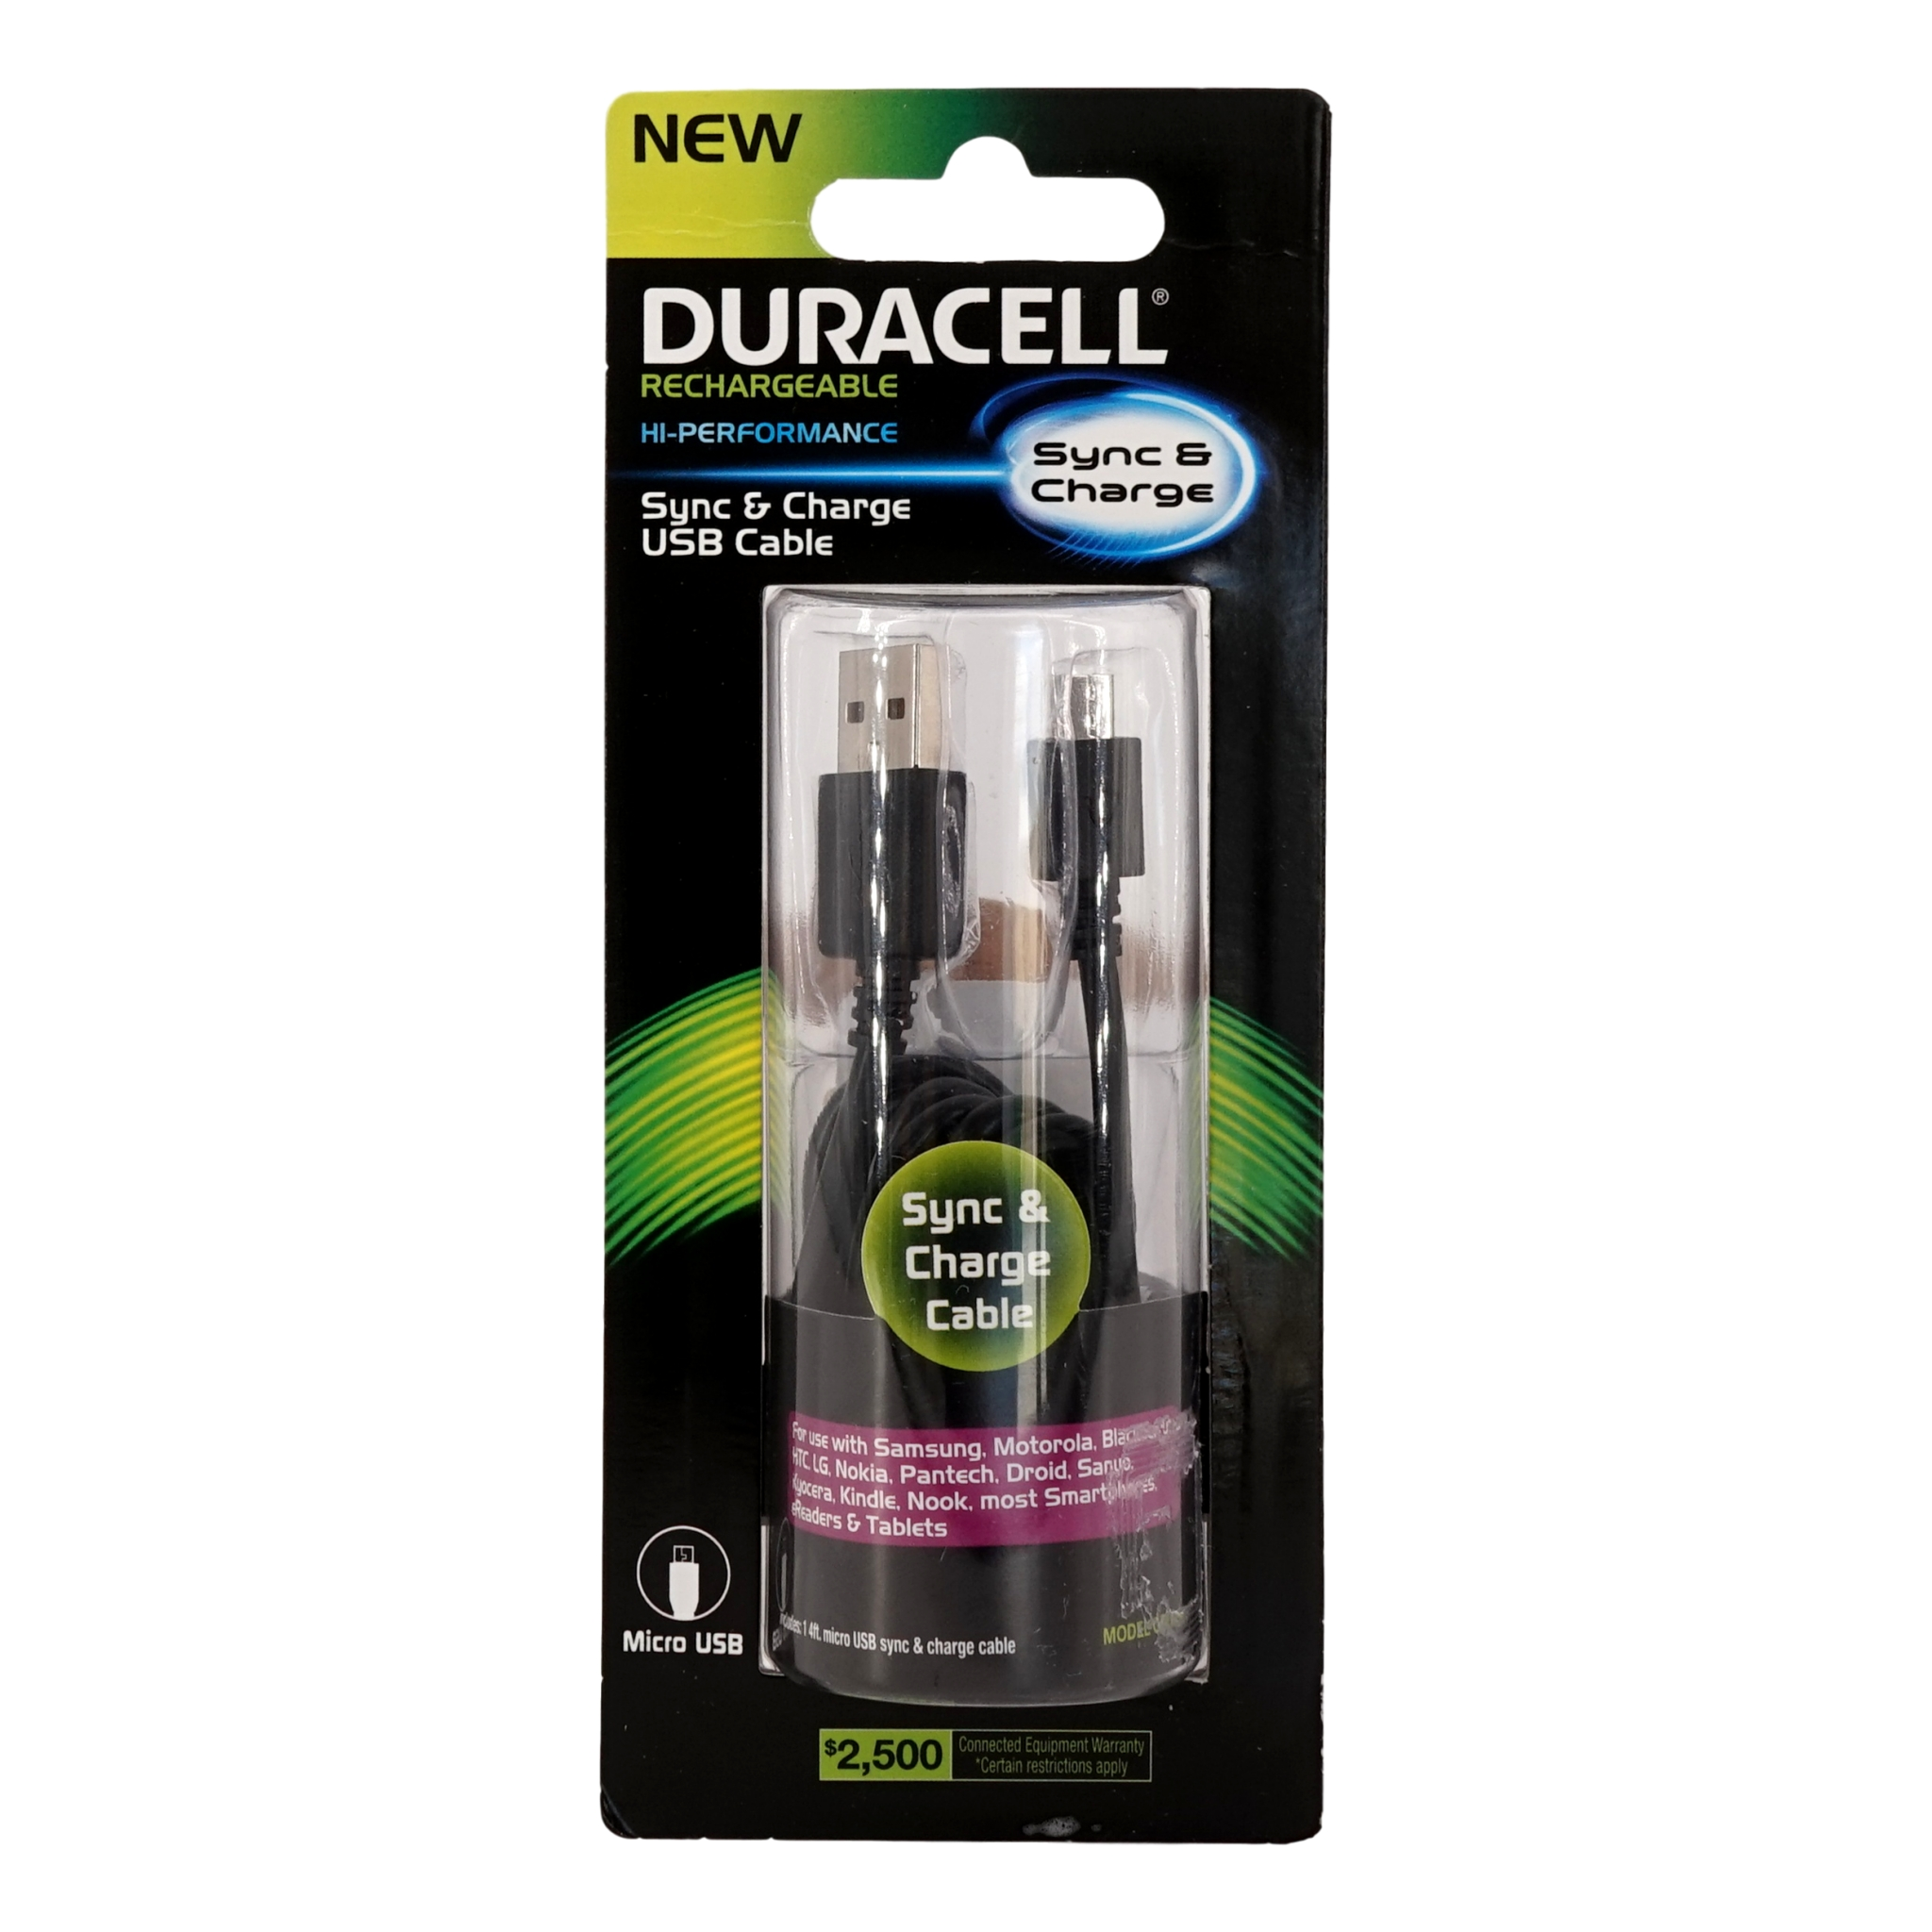 duracell sync and charge usb cable review